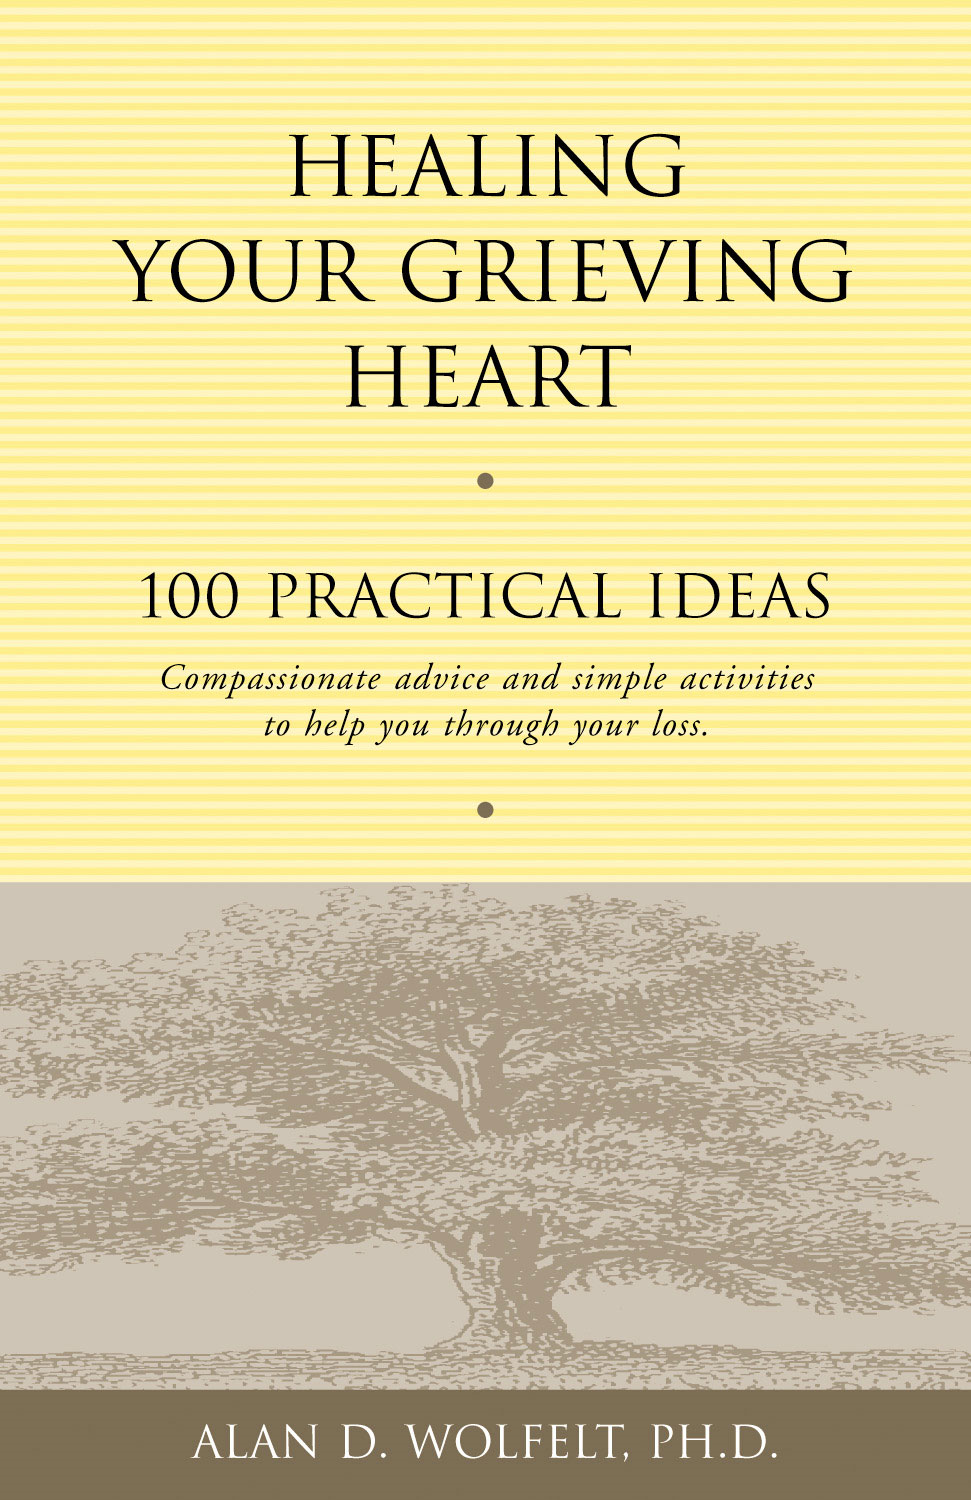 Healing Your Grieving Heart By: Alan D. Wolfelt, PhD